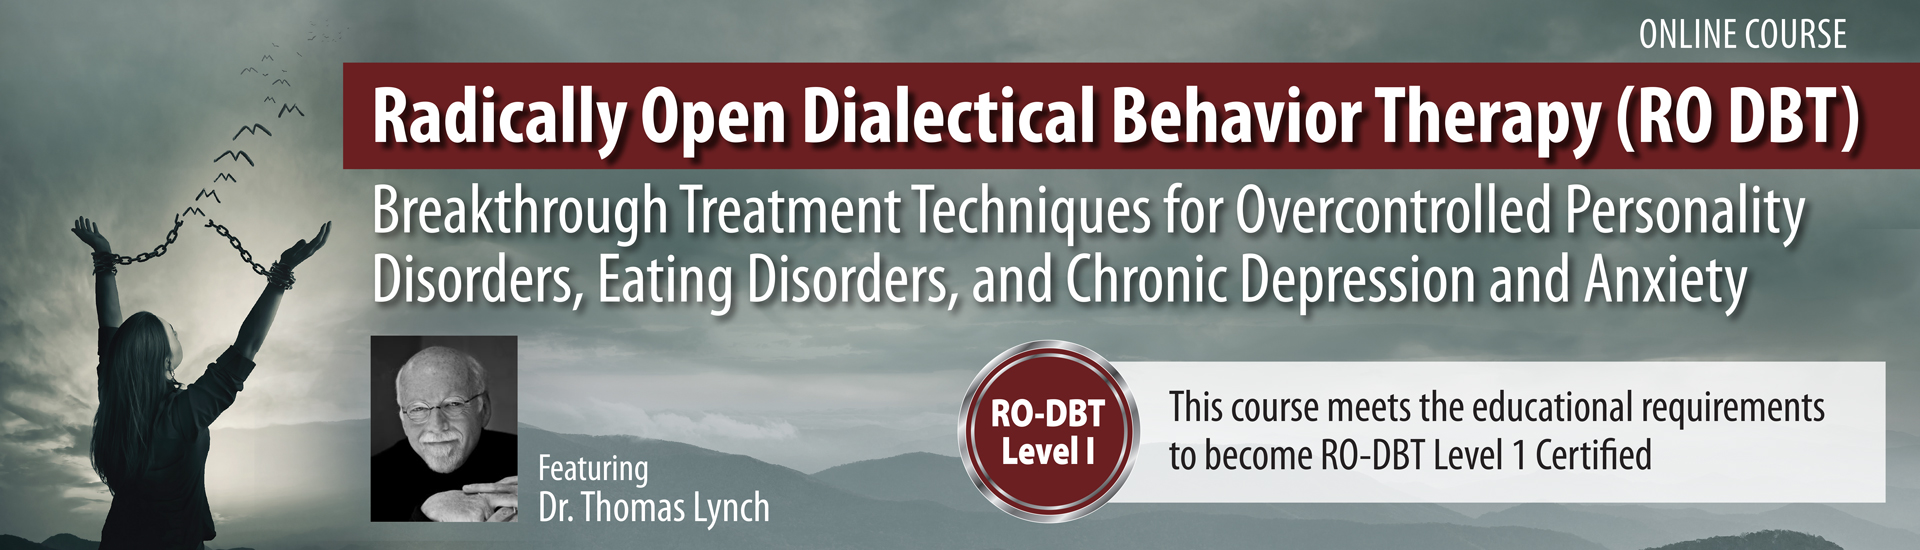 Radically Open Dialectical Behavior Therapy (RO DBT) Online Course